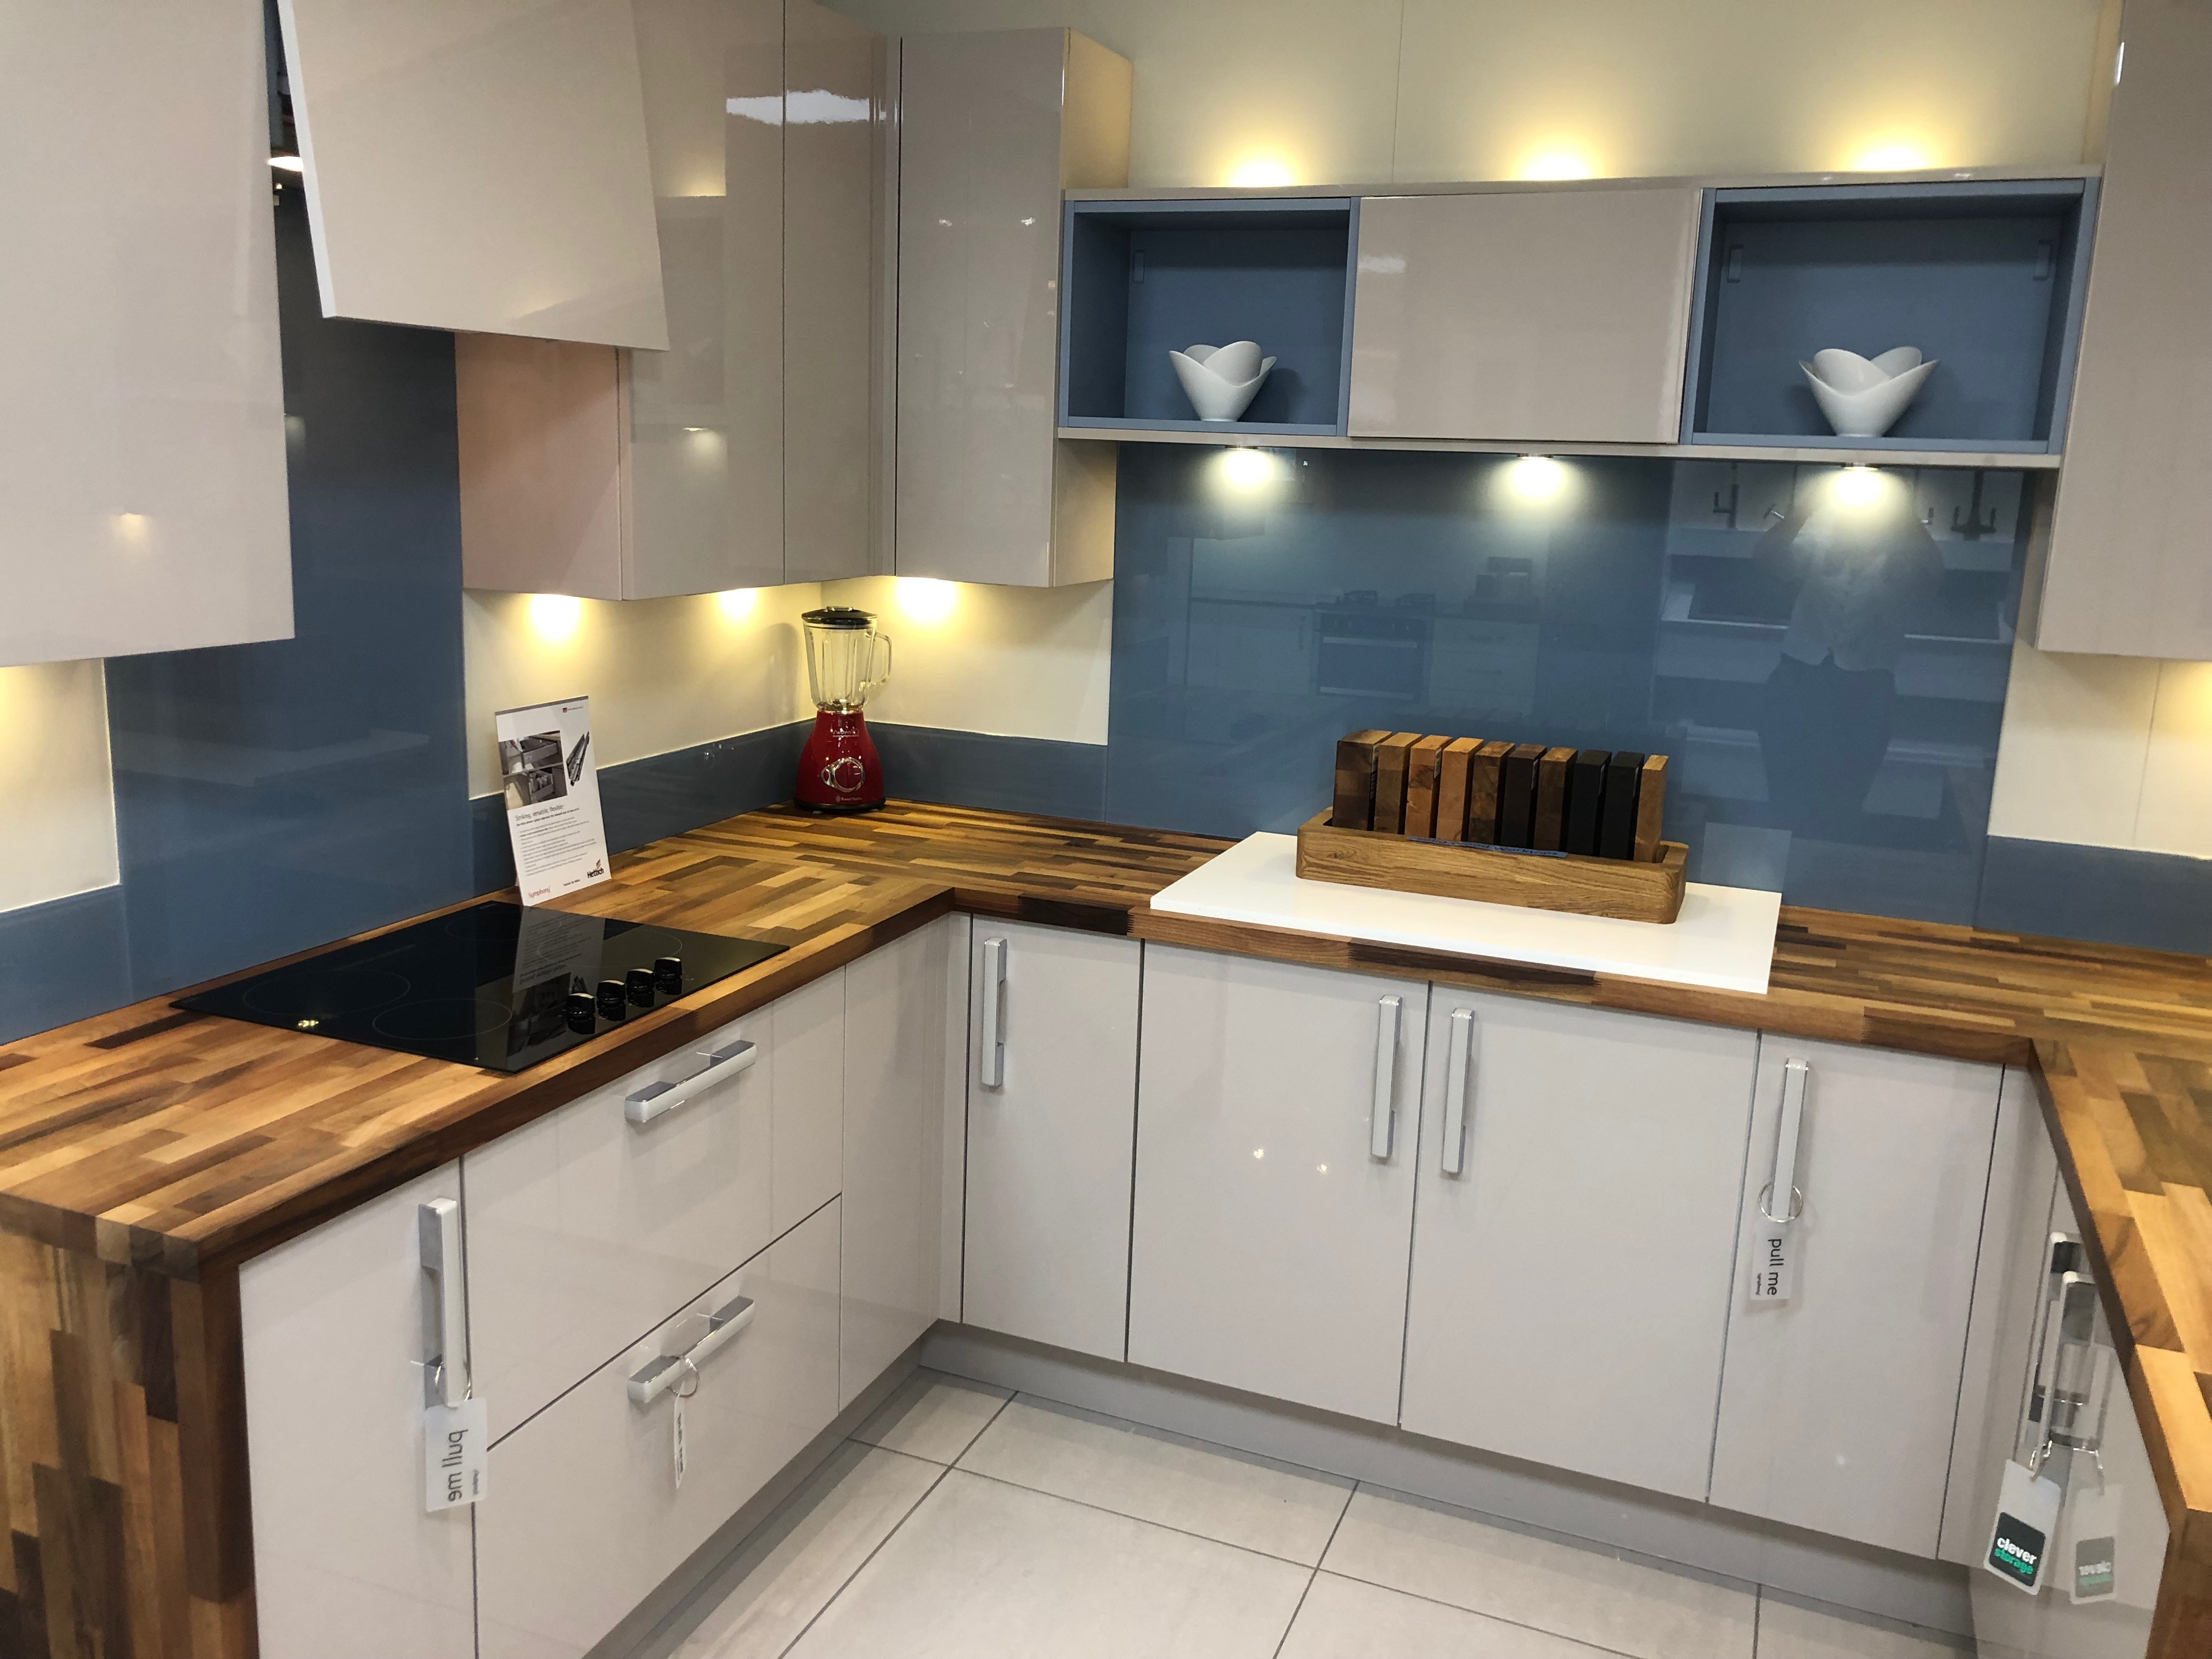 MKM Building Supplies - Perth - Accessible Kitchens ...